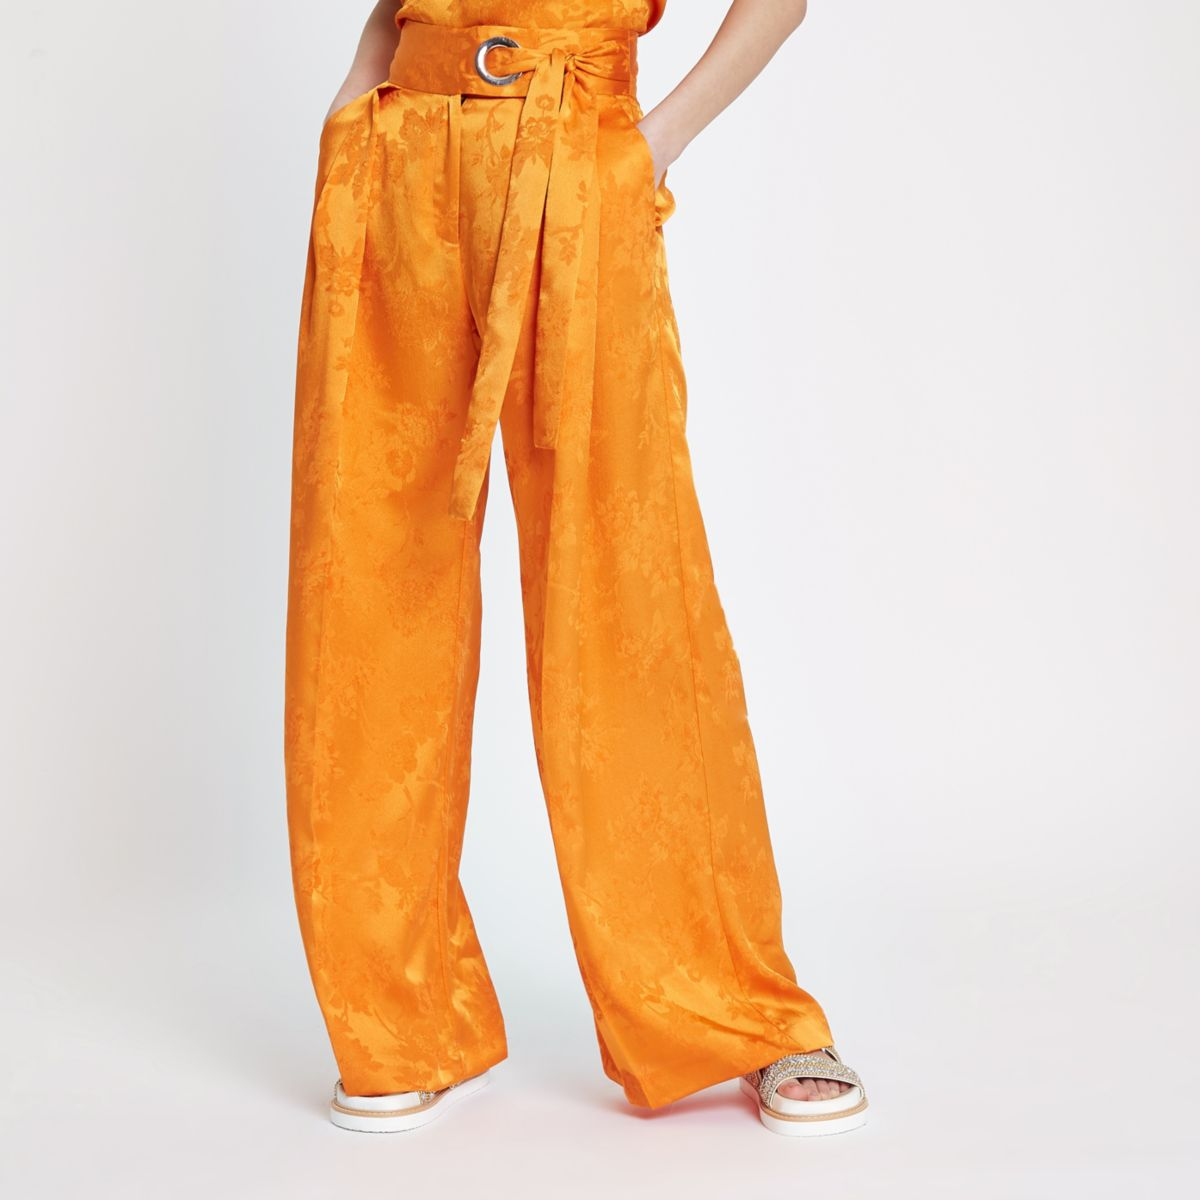 Orange jacquard wide leg trousers